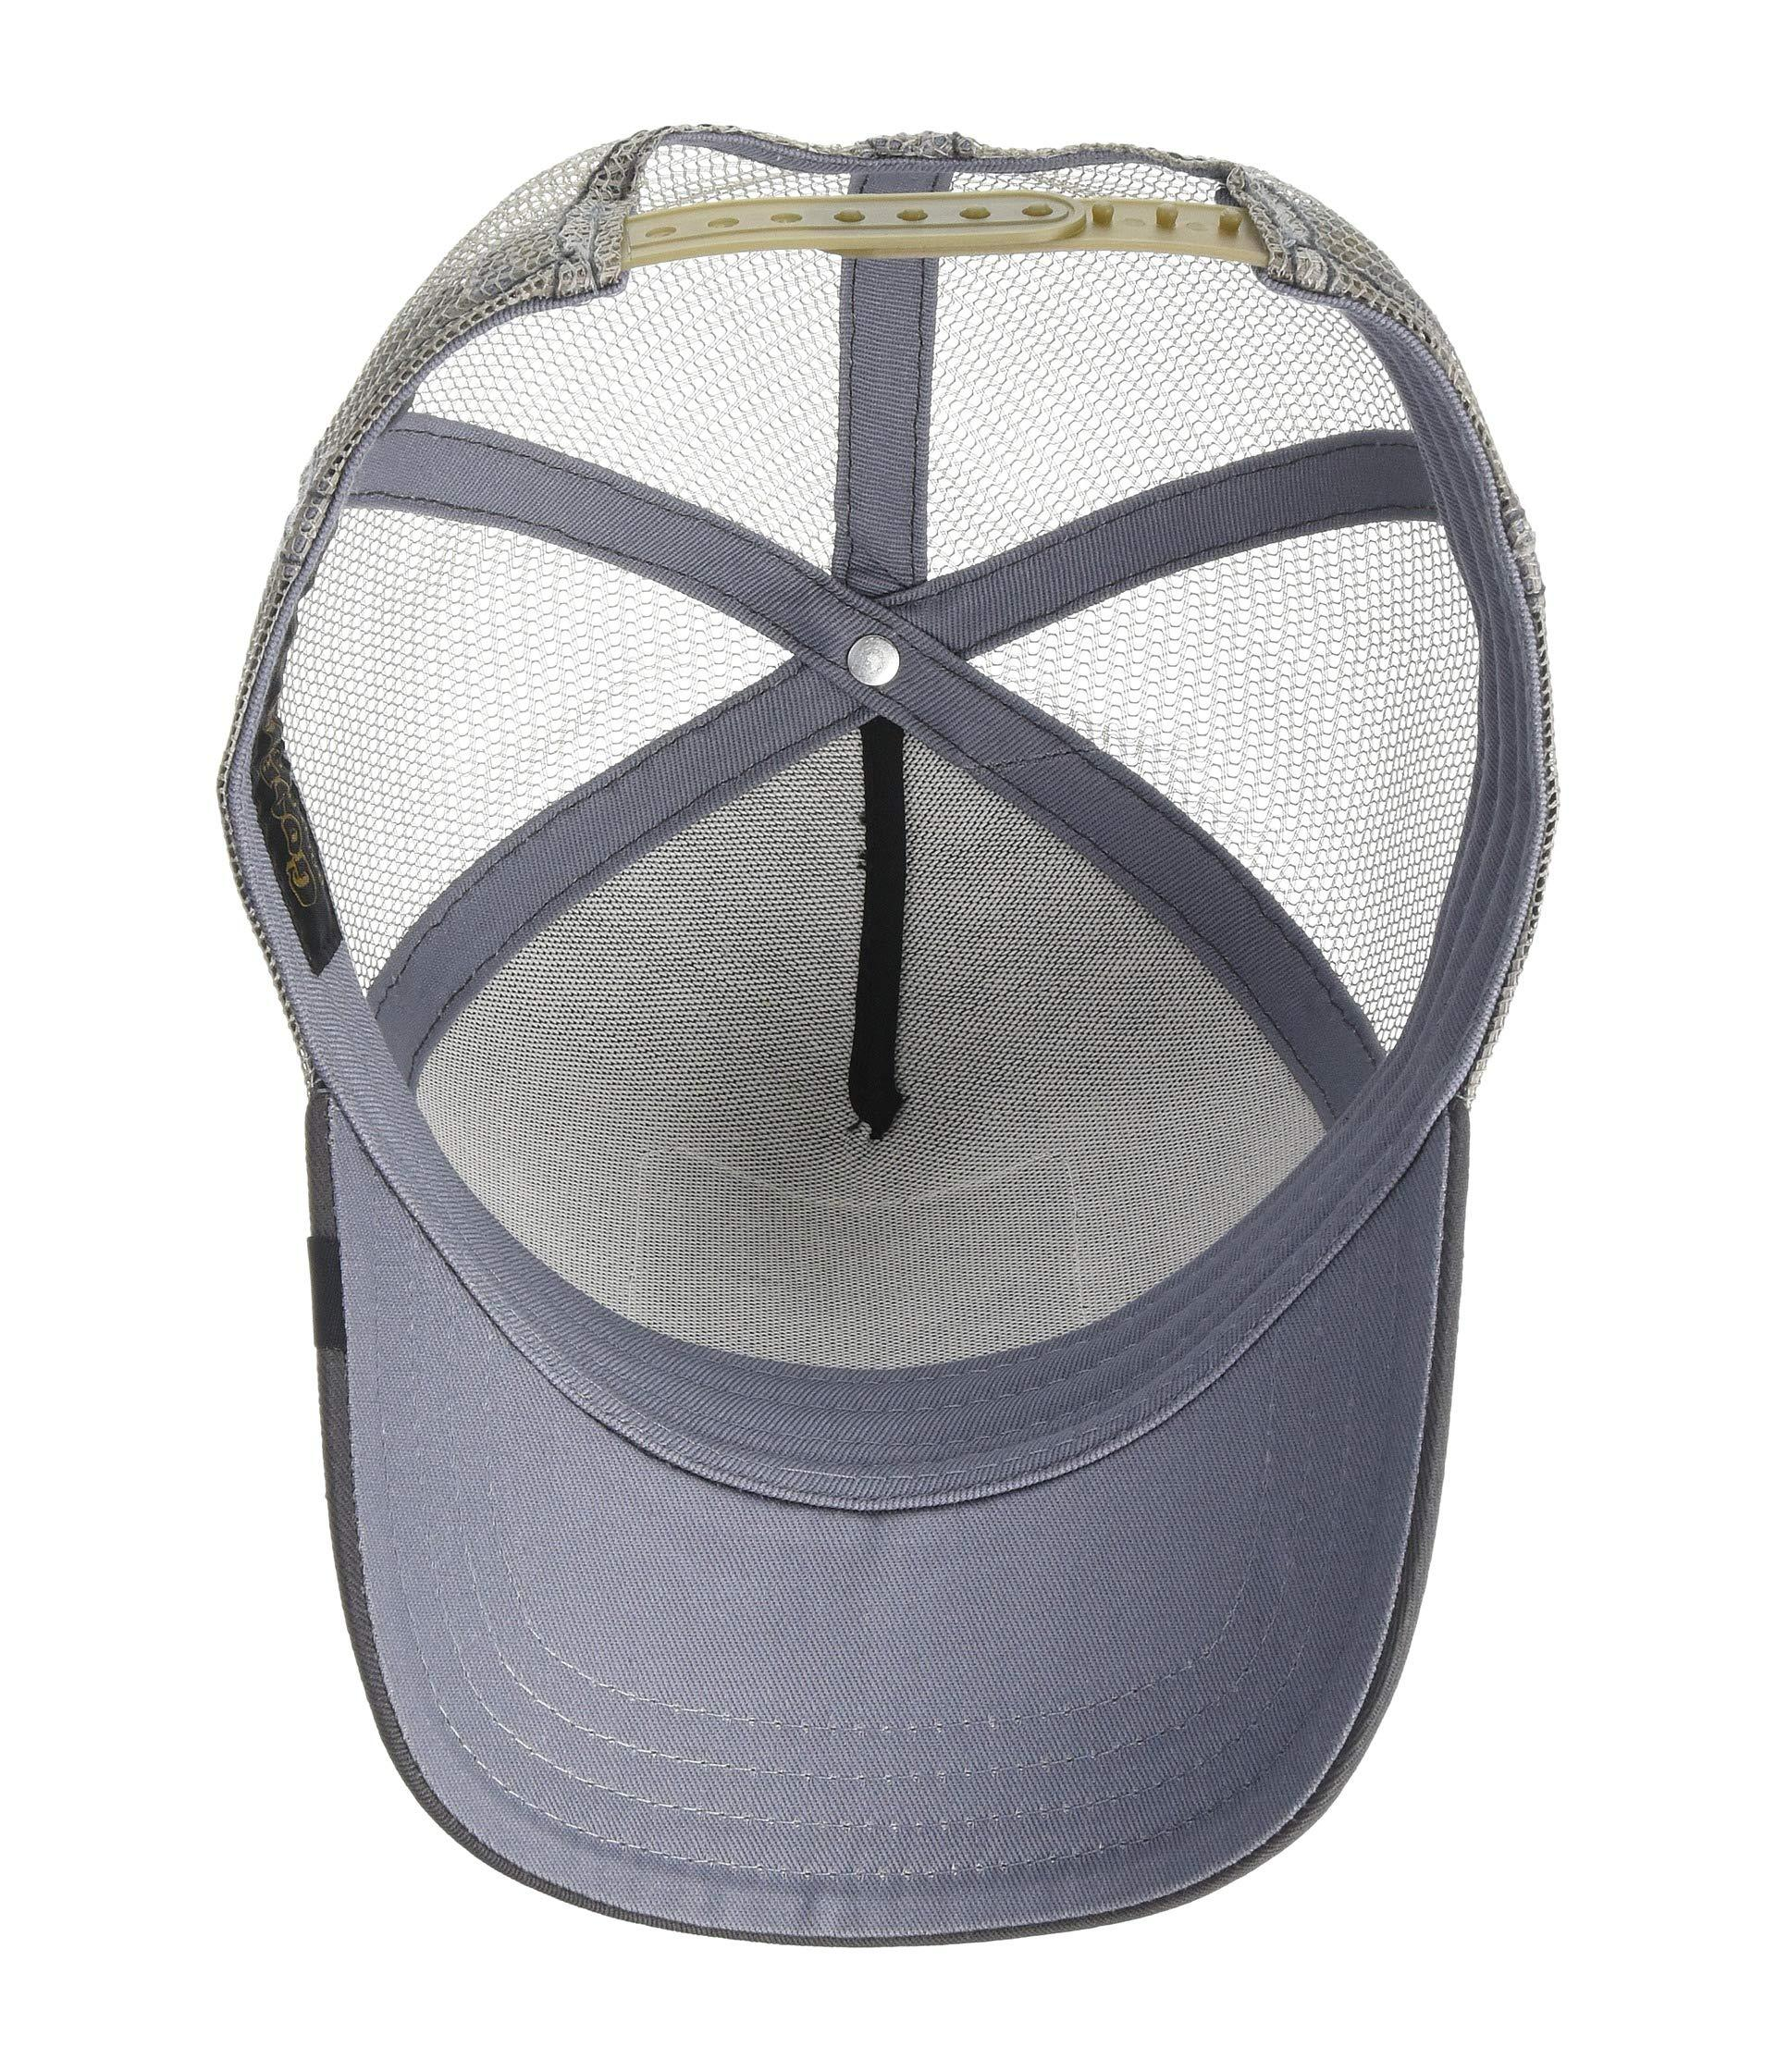 336d88f3a8b Lyst - Goorin Bros Animal Farm Snap Back Trucker Hat (brown Chicky Boom)  Caps in Gray for Men